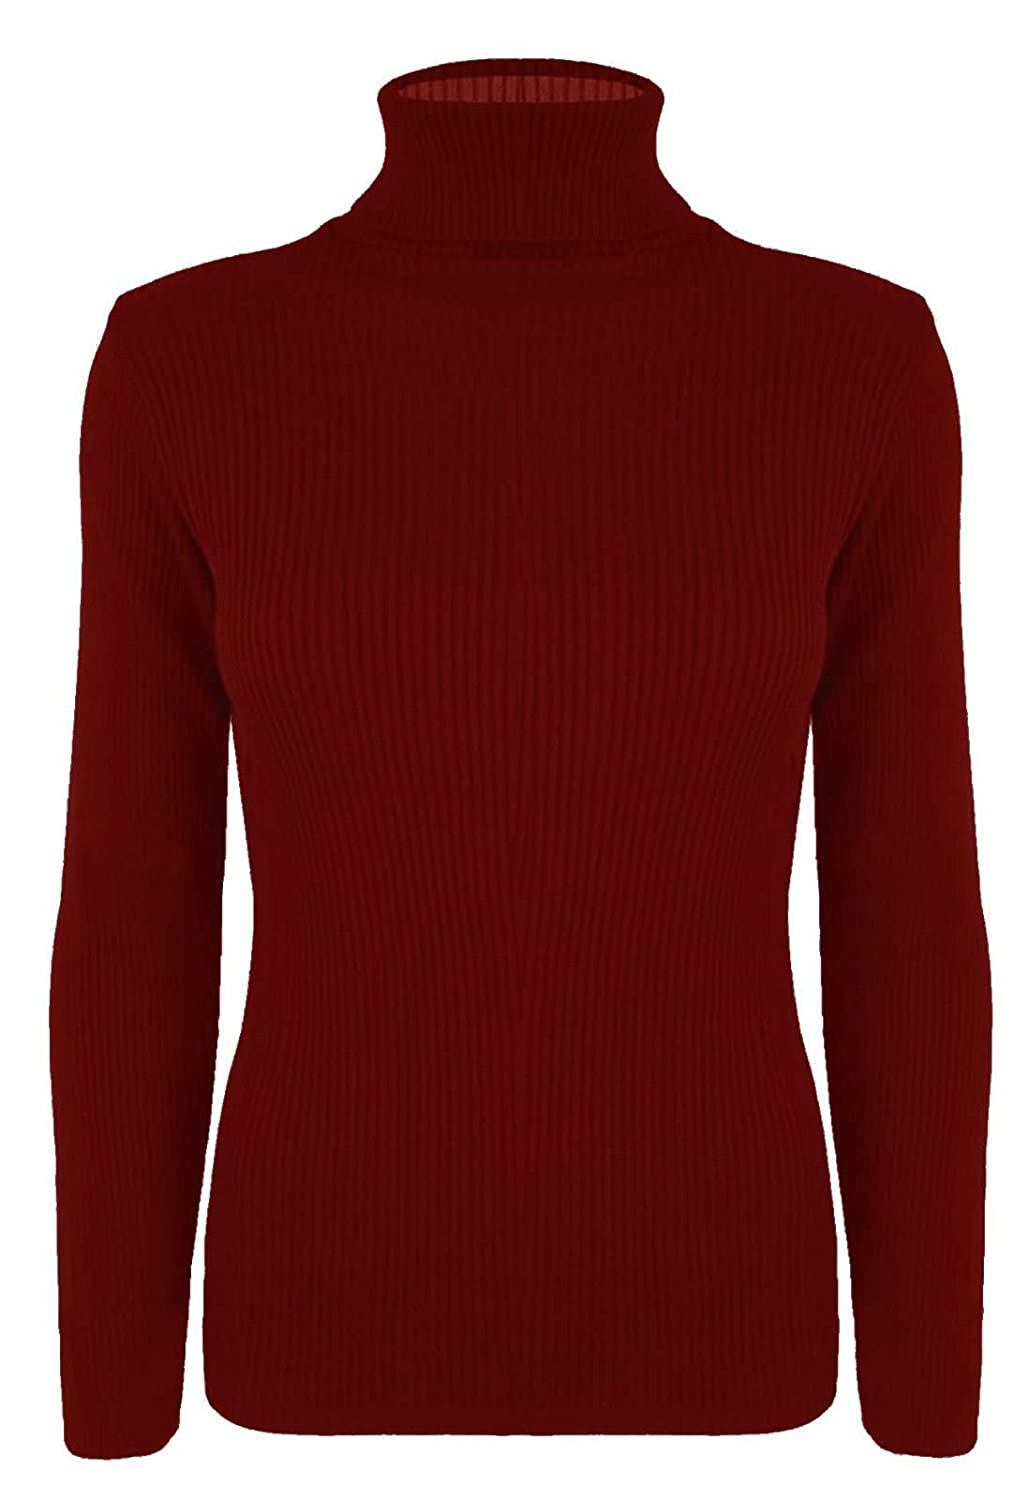 New Womens Plain Ribbed Knitted Polo Turtle Neck Stretch Long Sleeve Jumper Top UK